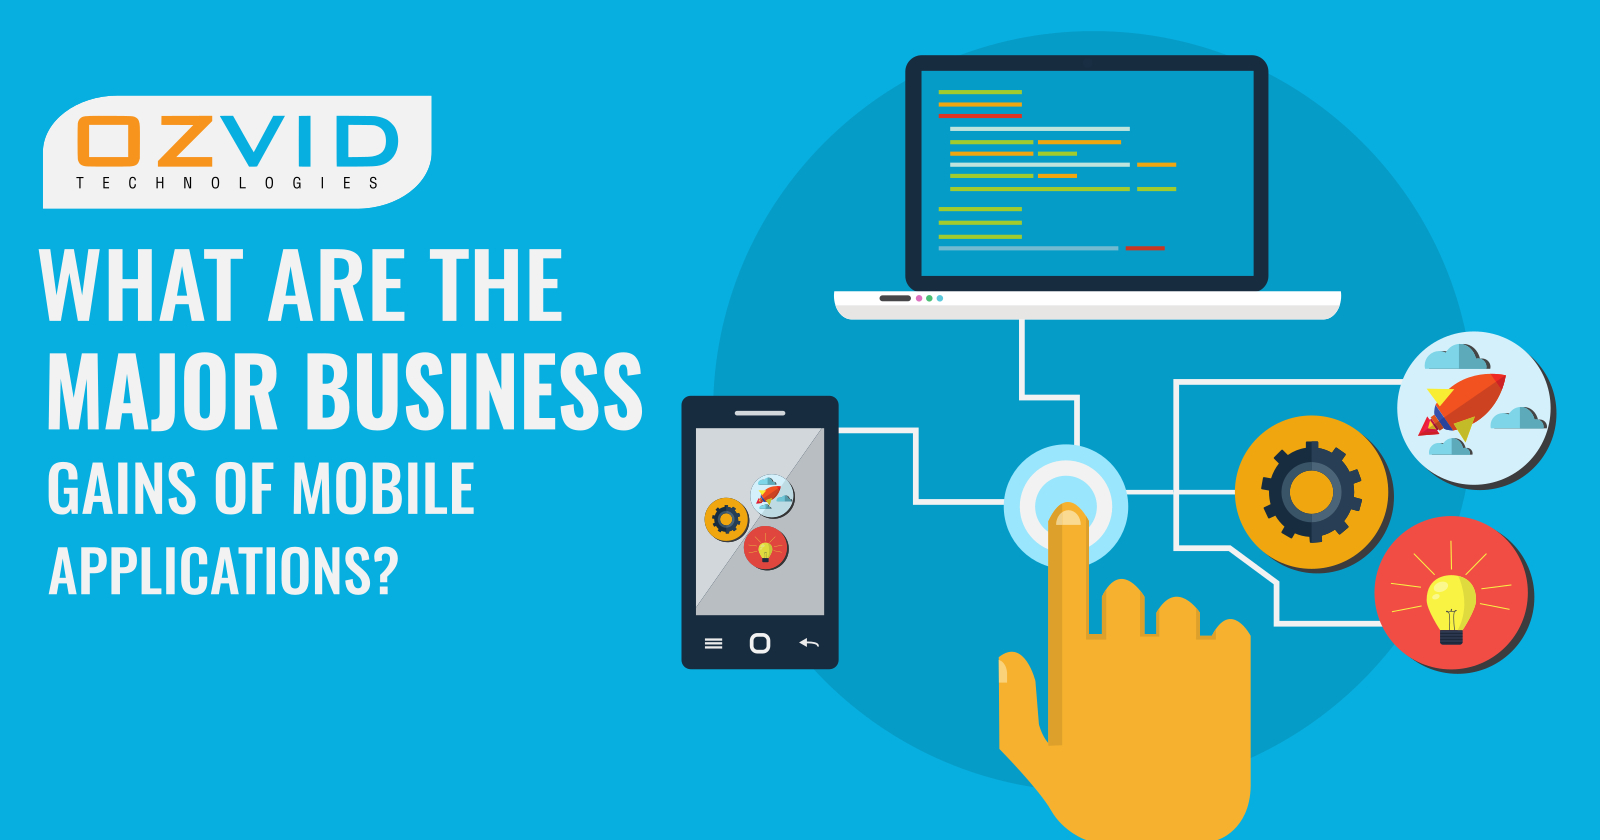 What Are The Major Business Gains Of Mobile Applications?